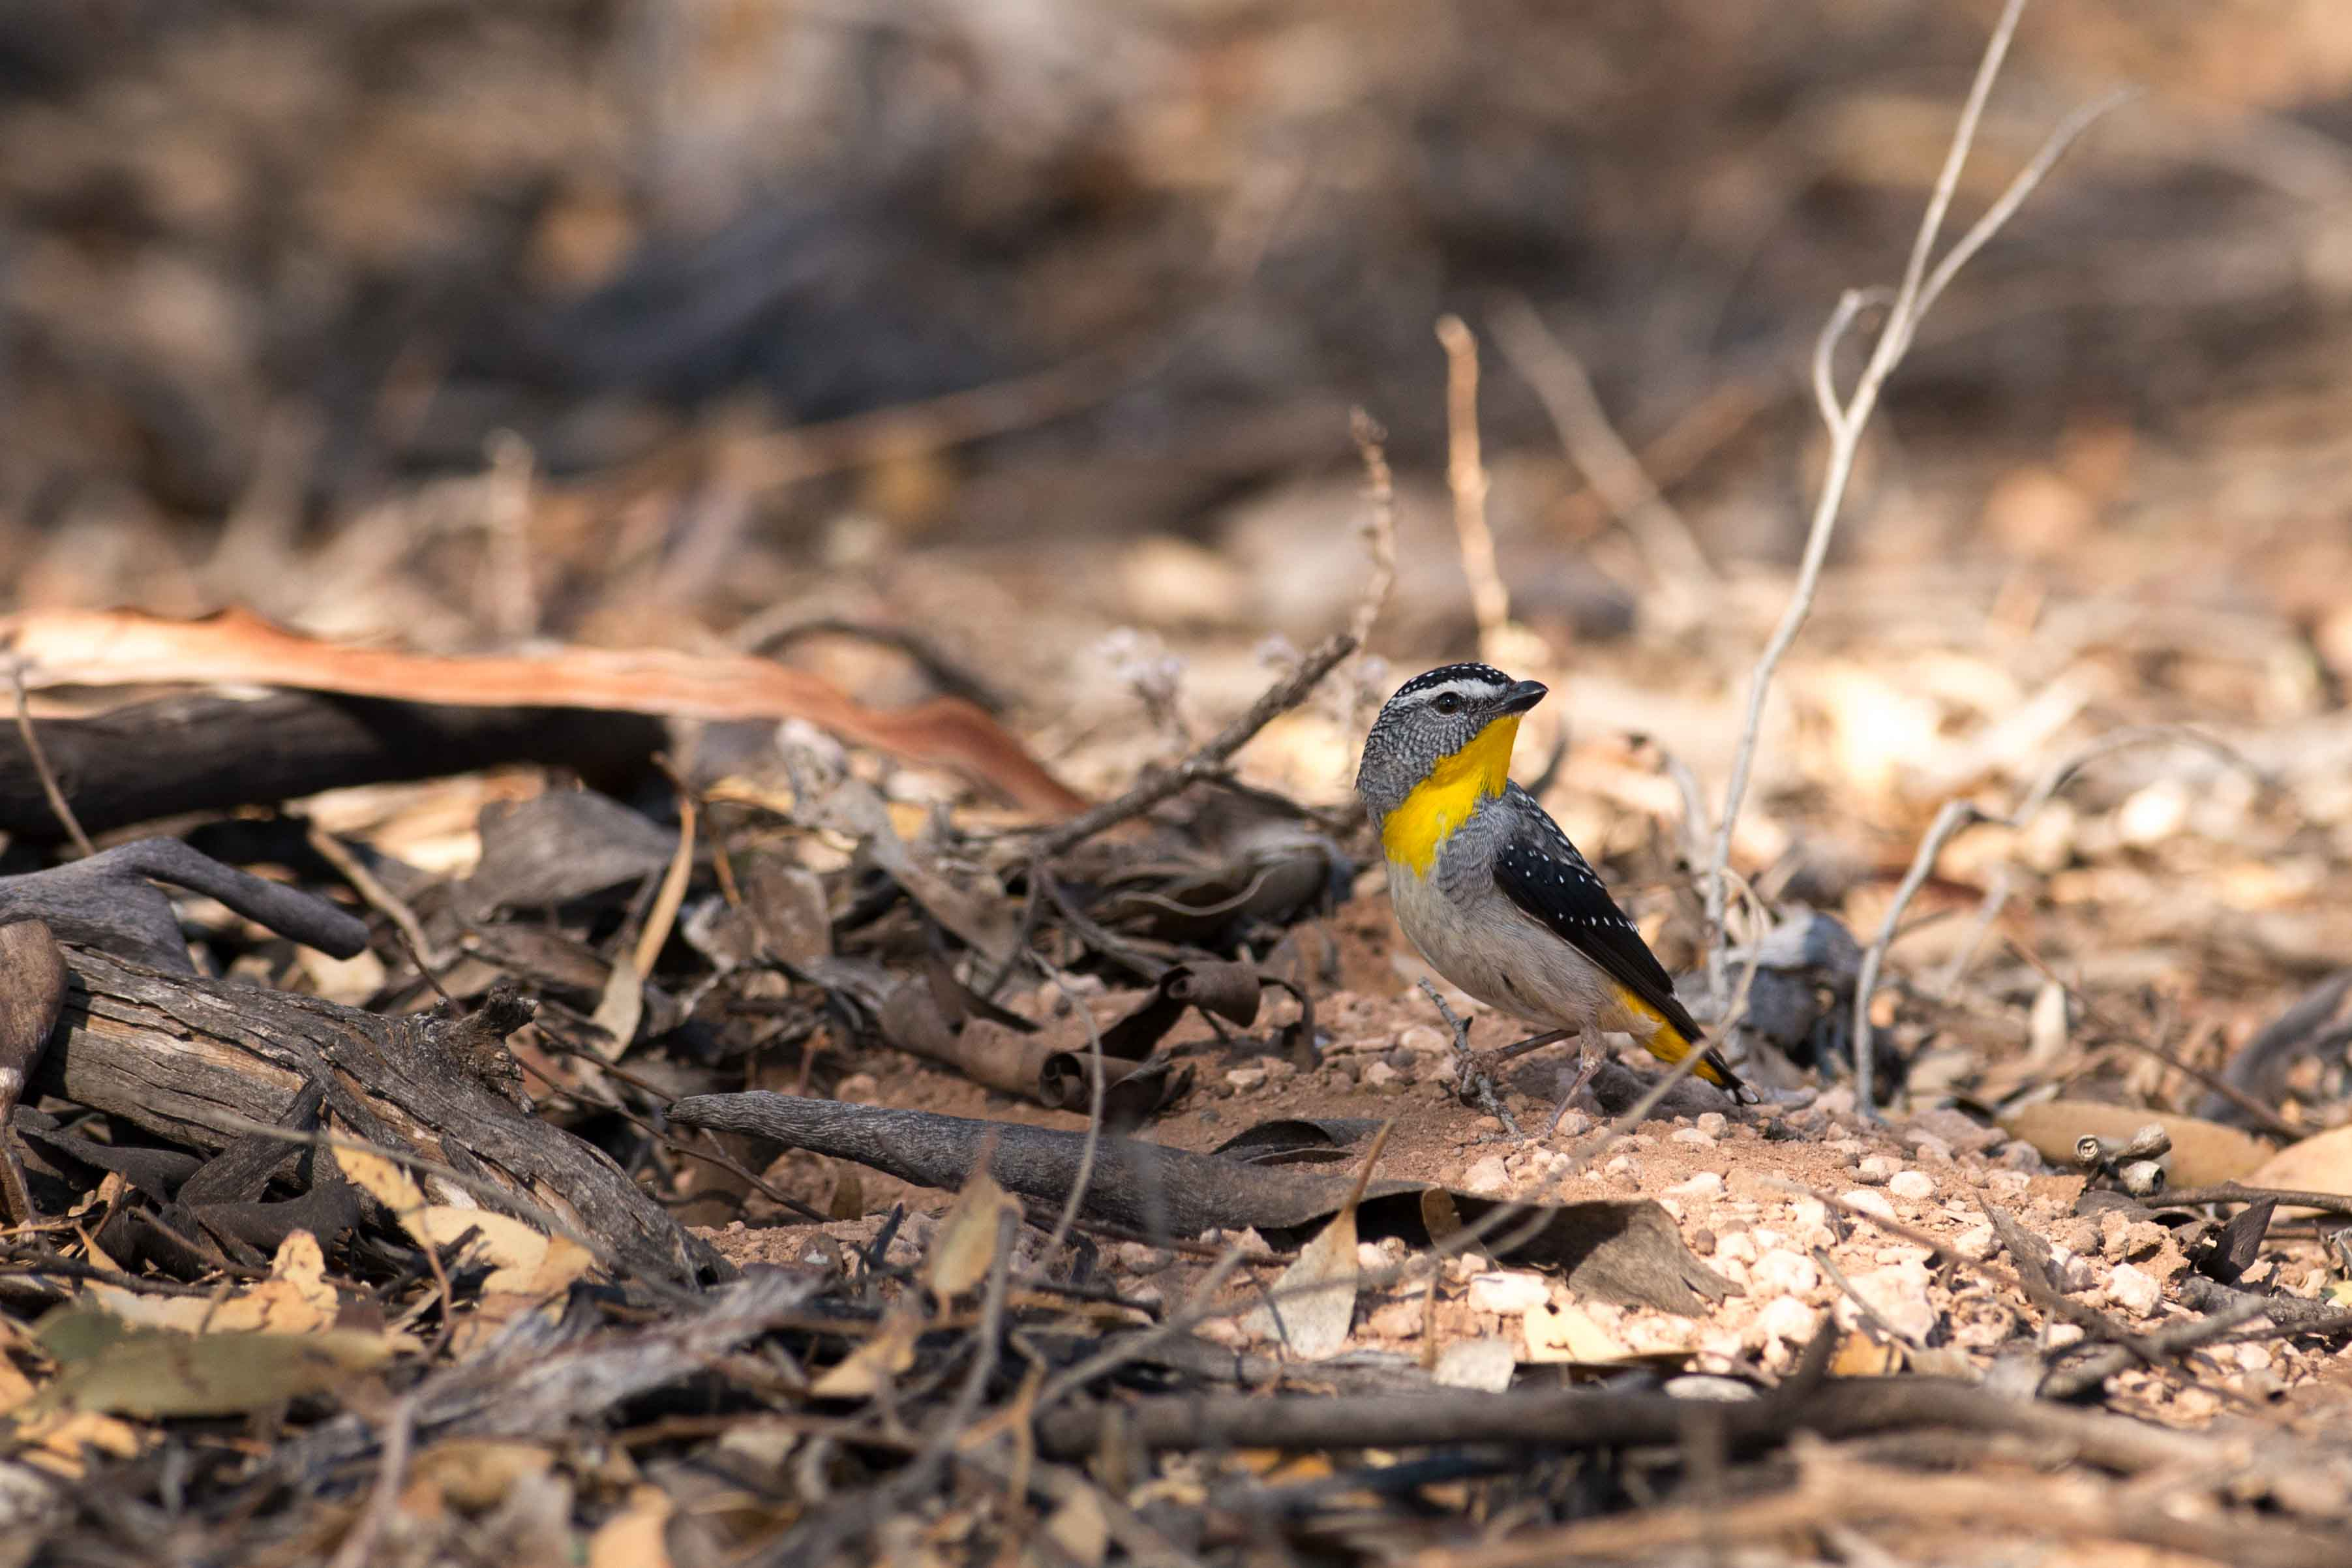 A male spotted pardalote (one of the study species) is shown outside a nest at the field site in Brookfield Conservation Park, Blanchetown, South Australia.   Photo courtesy Allison Johnson